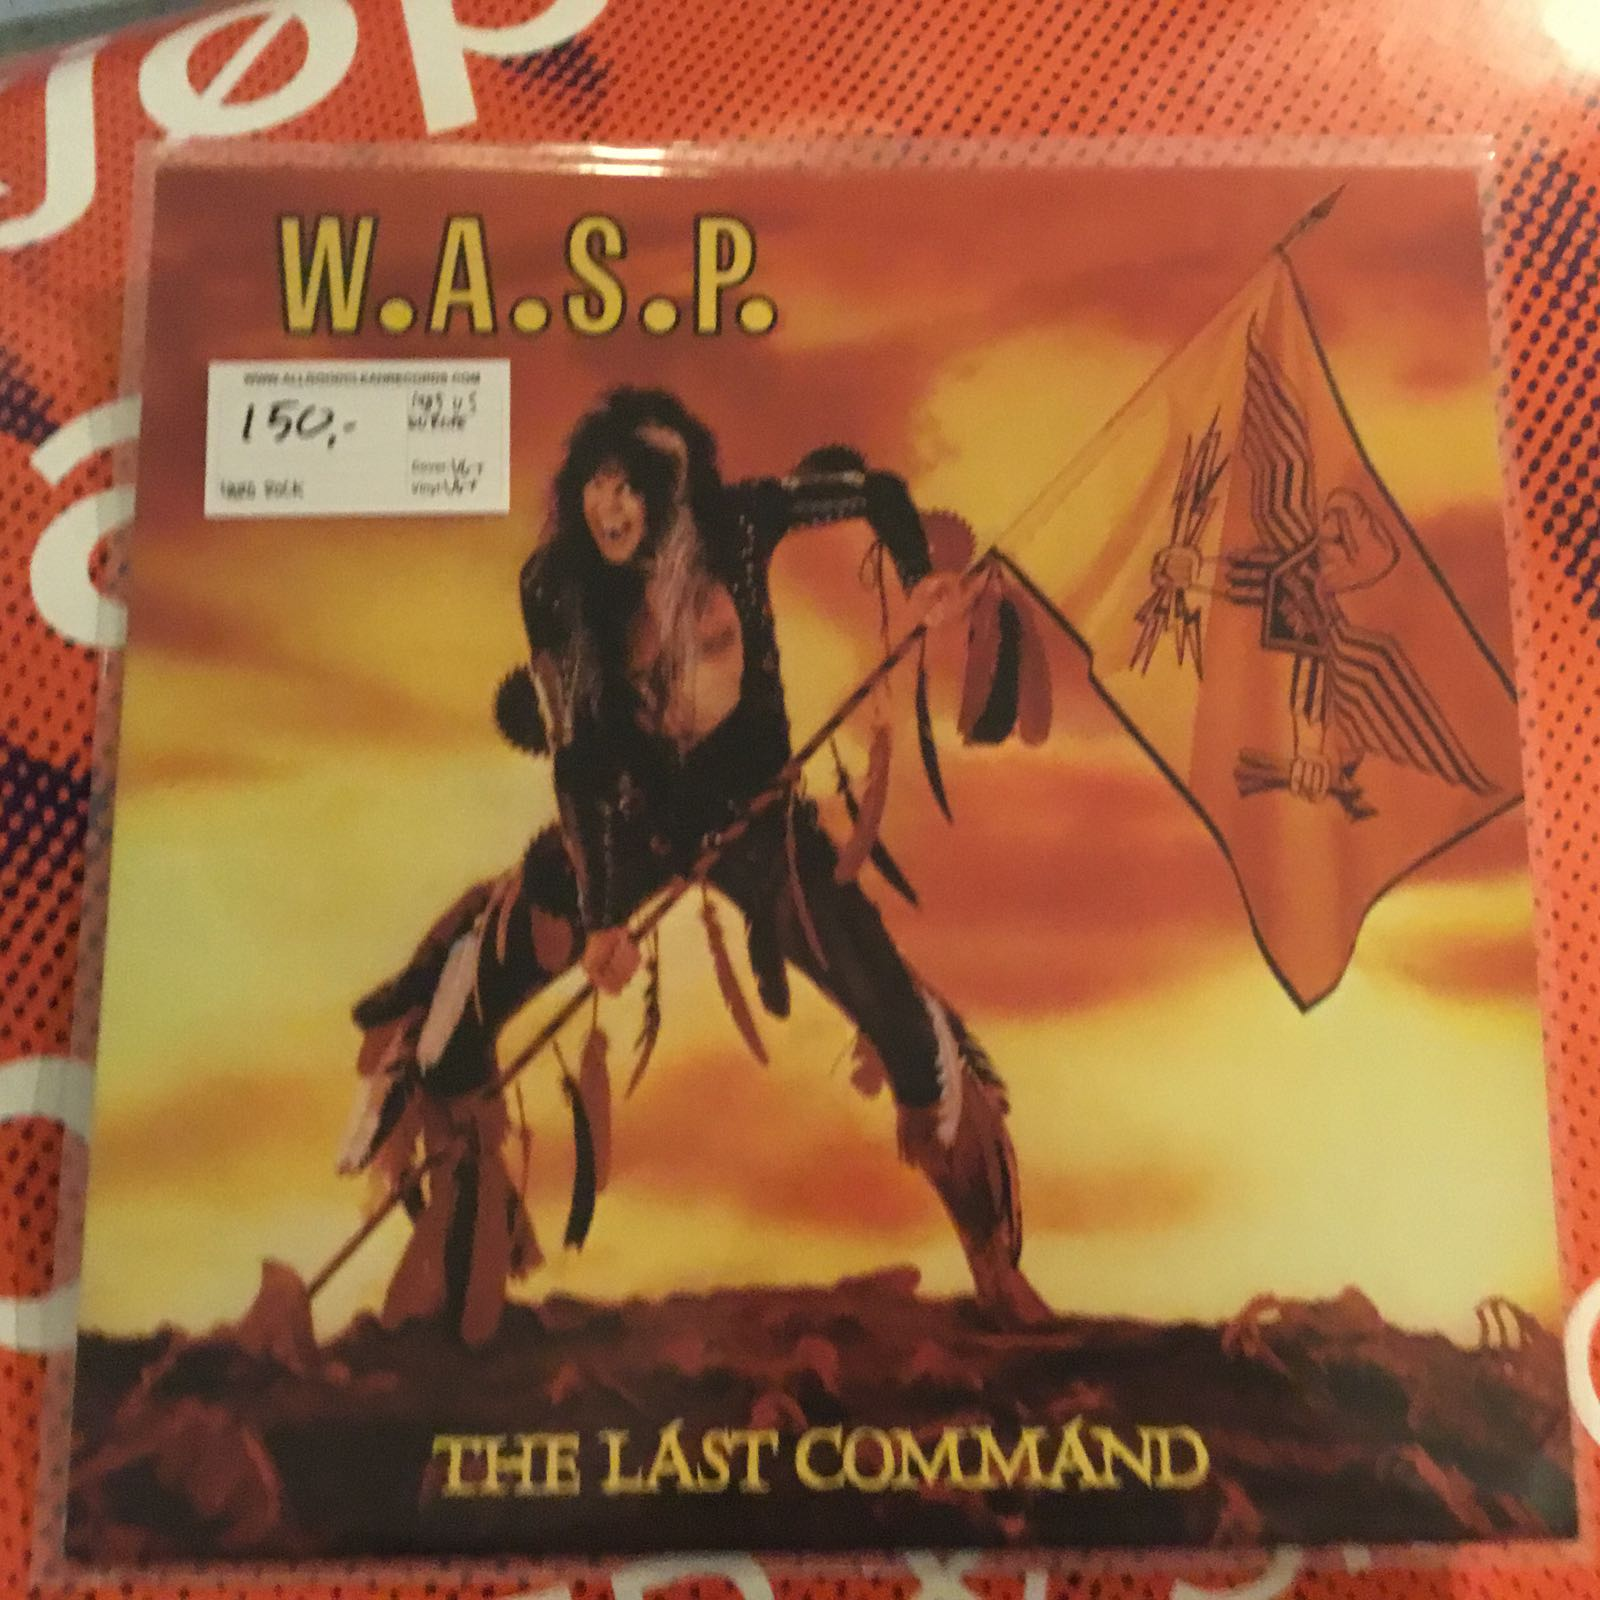 W.A.S.P – The Last Command [LP] (2. hand)